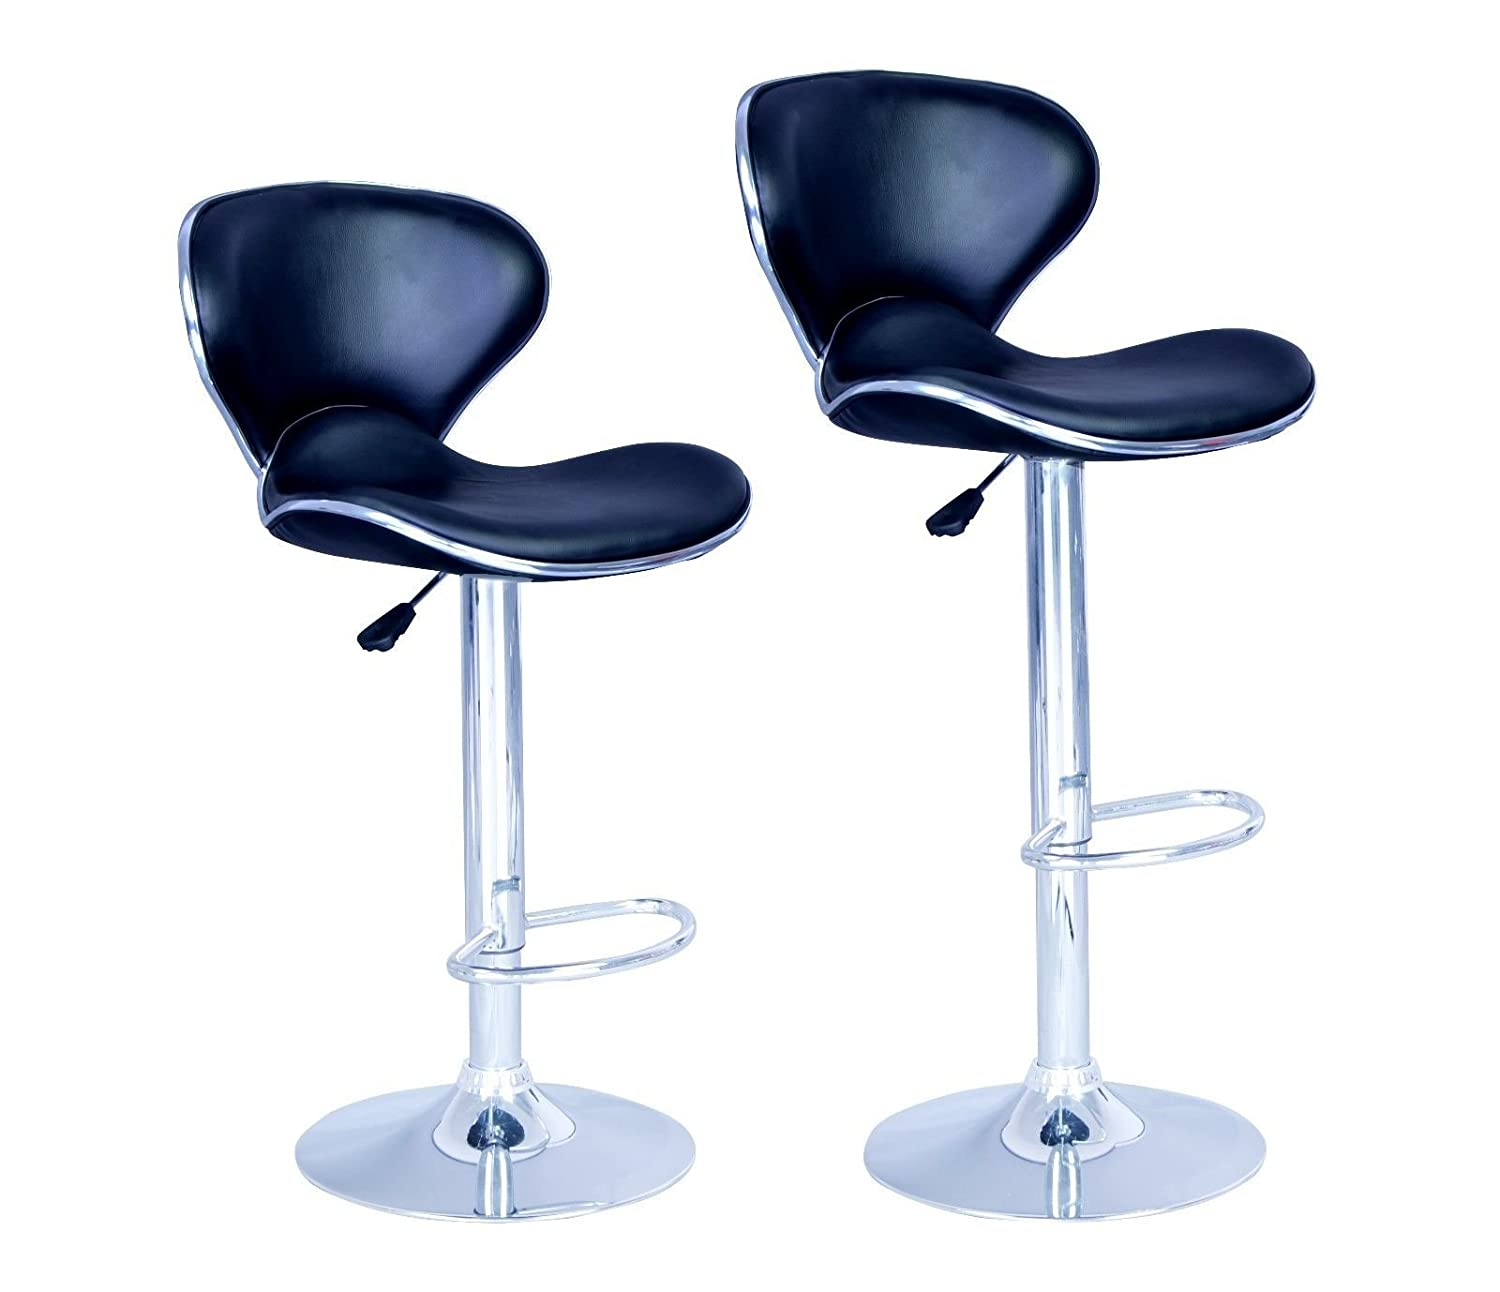 Amazon.com New Modern Adjustable Synthetic Leather Swivel Bar Stools Chairs-Sets of 2 Kitchen u0026 Dining  sc 1 st  Amazon.com & Amazon.com: New Modern Adjustable Synthetic Leather Swivel Bar ... islam-shia.org